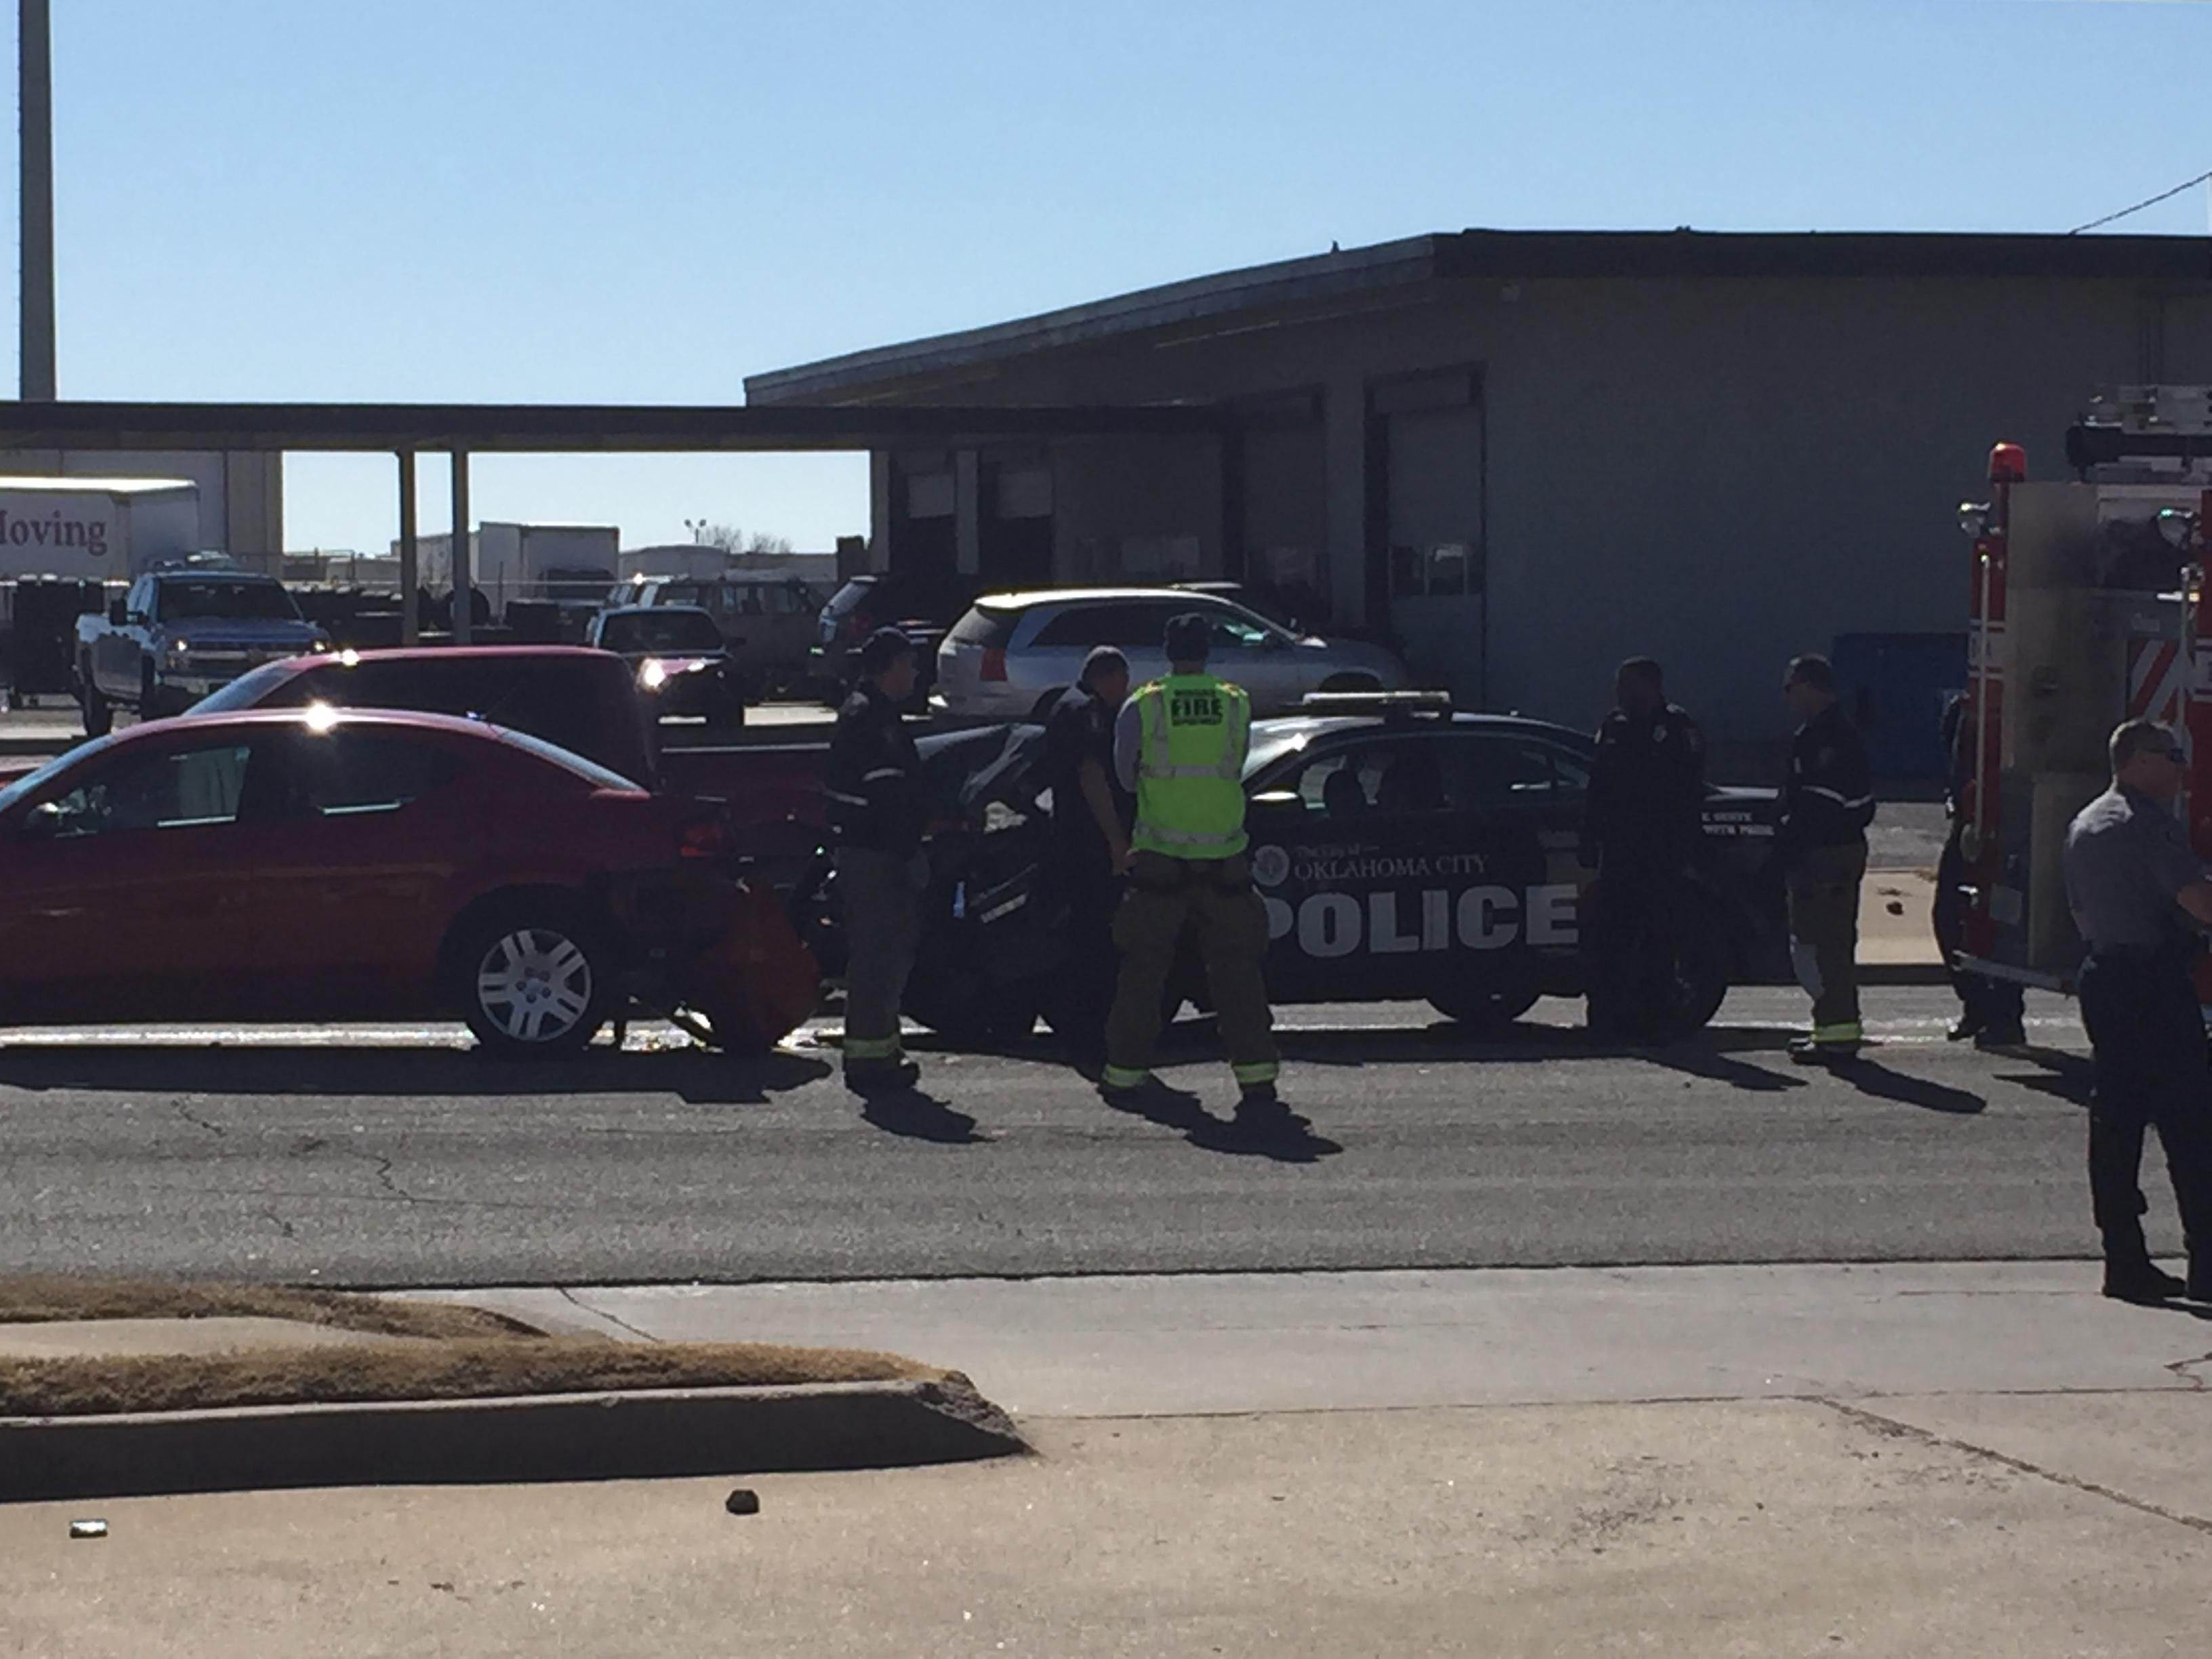 An Oklahoma City Police Department officer was injured in a crash involving several vehicles Feb. 7 in Moore. (KOKH/Matt Coon)